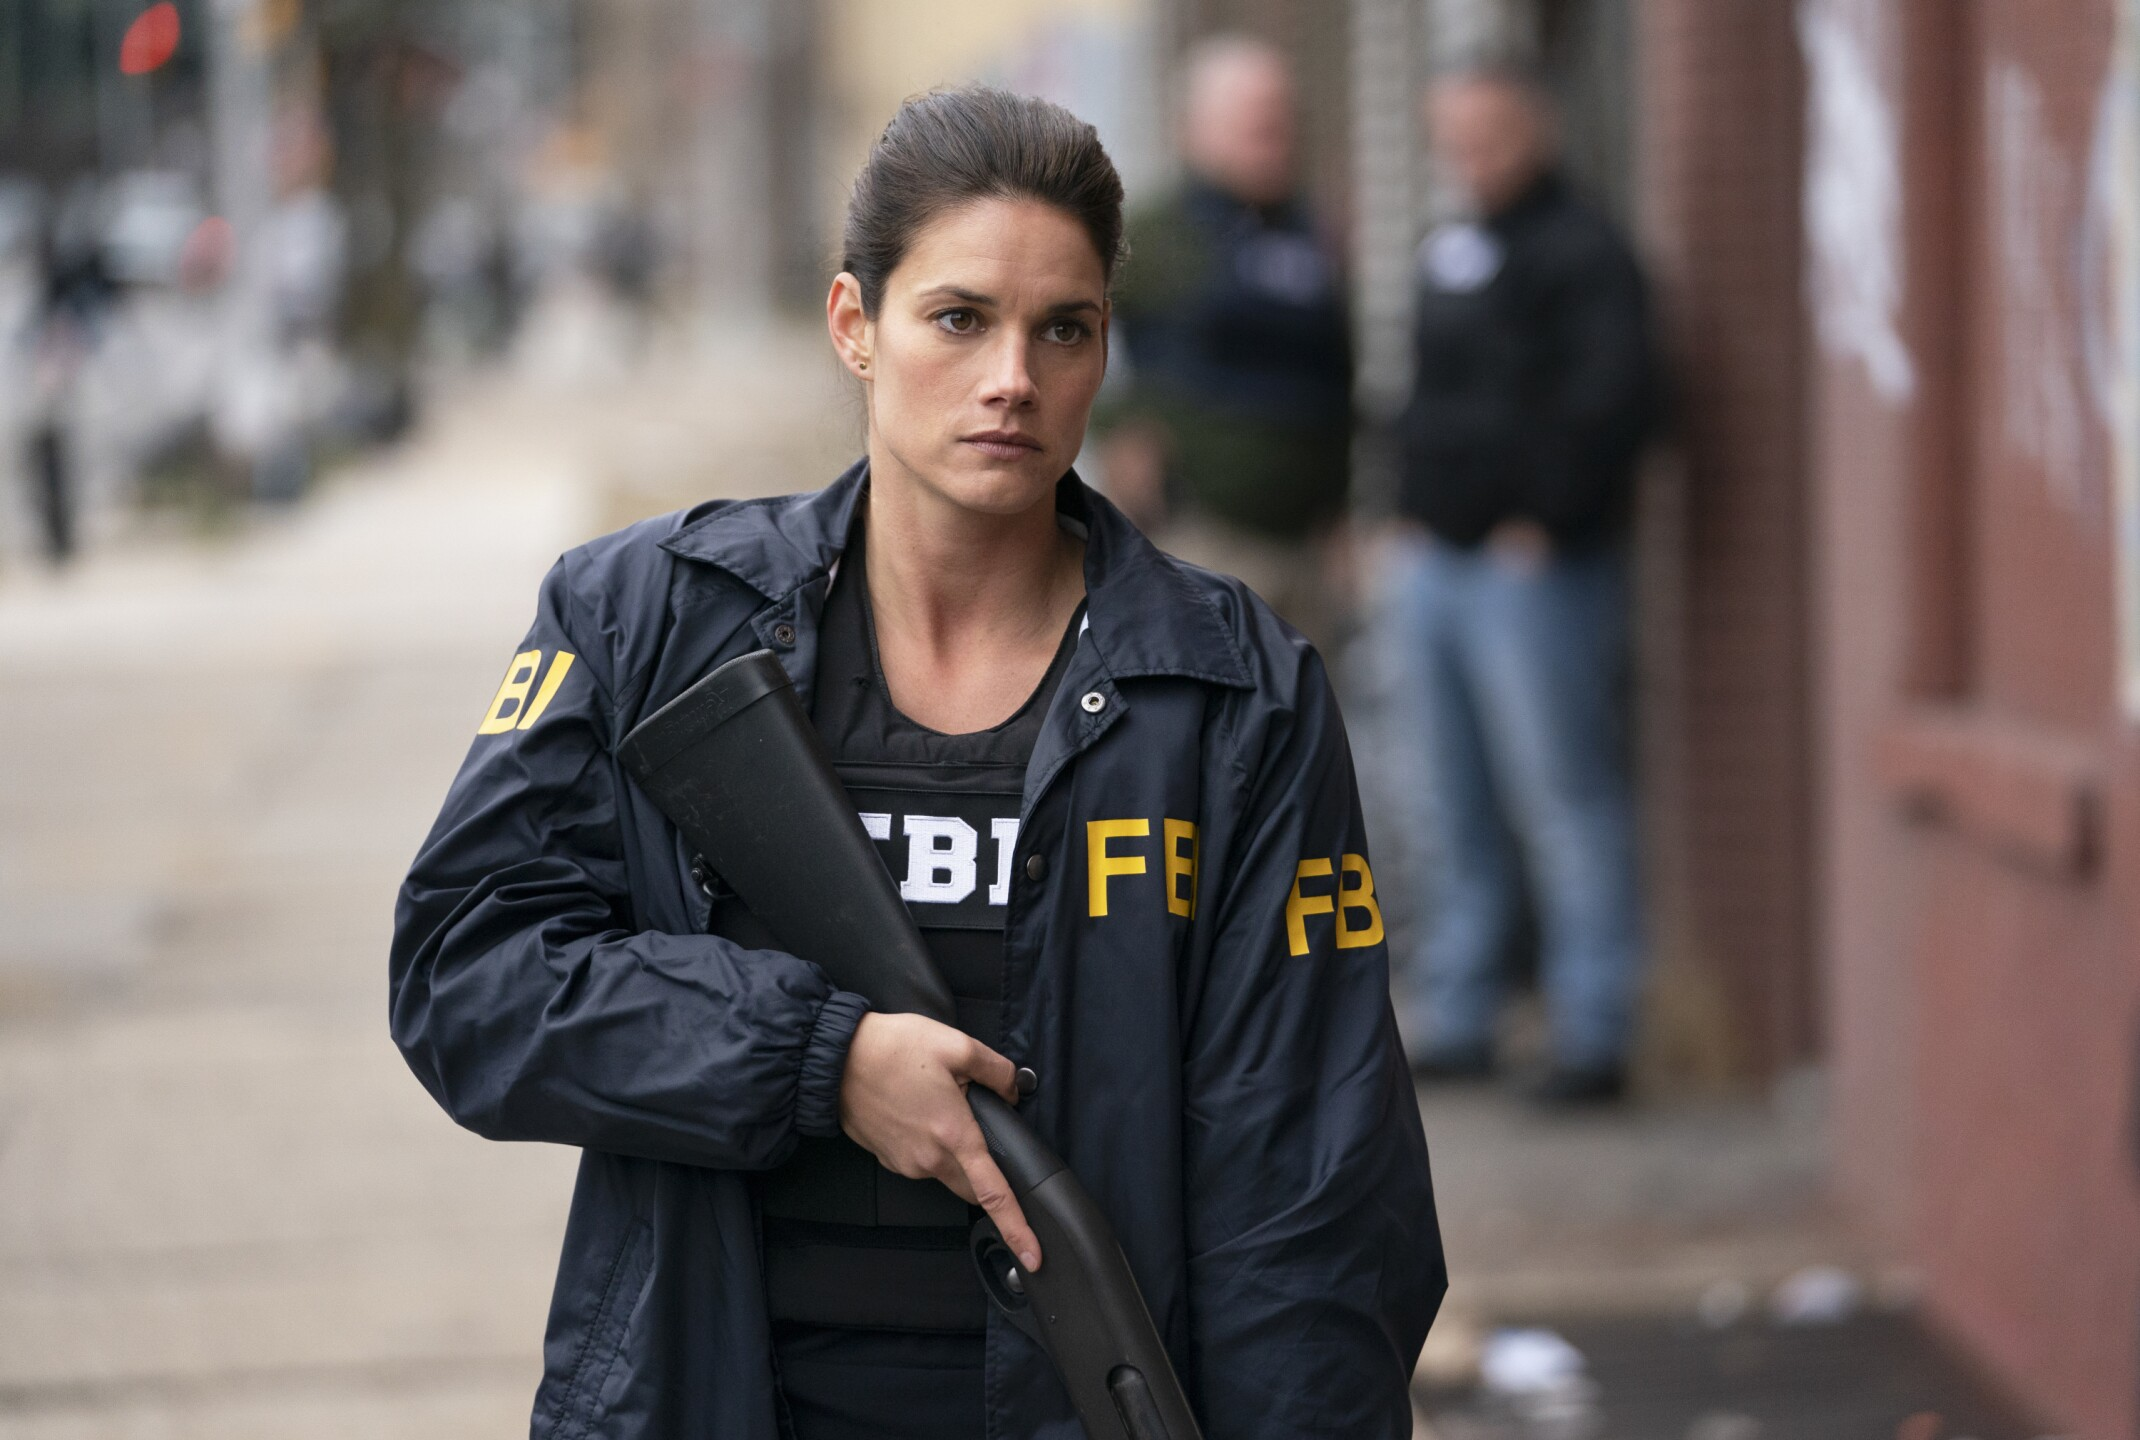 Photos: CBS's 'FBI' takes inside look into the life, work of a U.S. federalagent